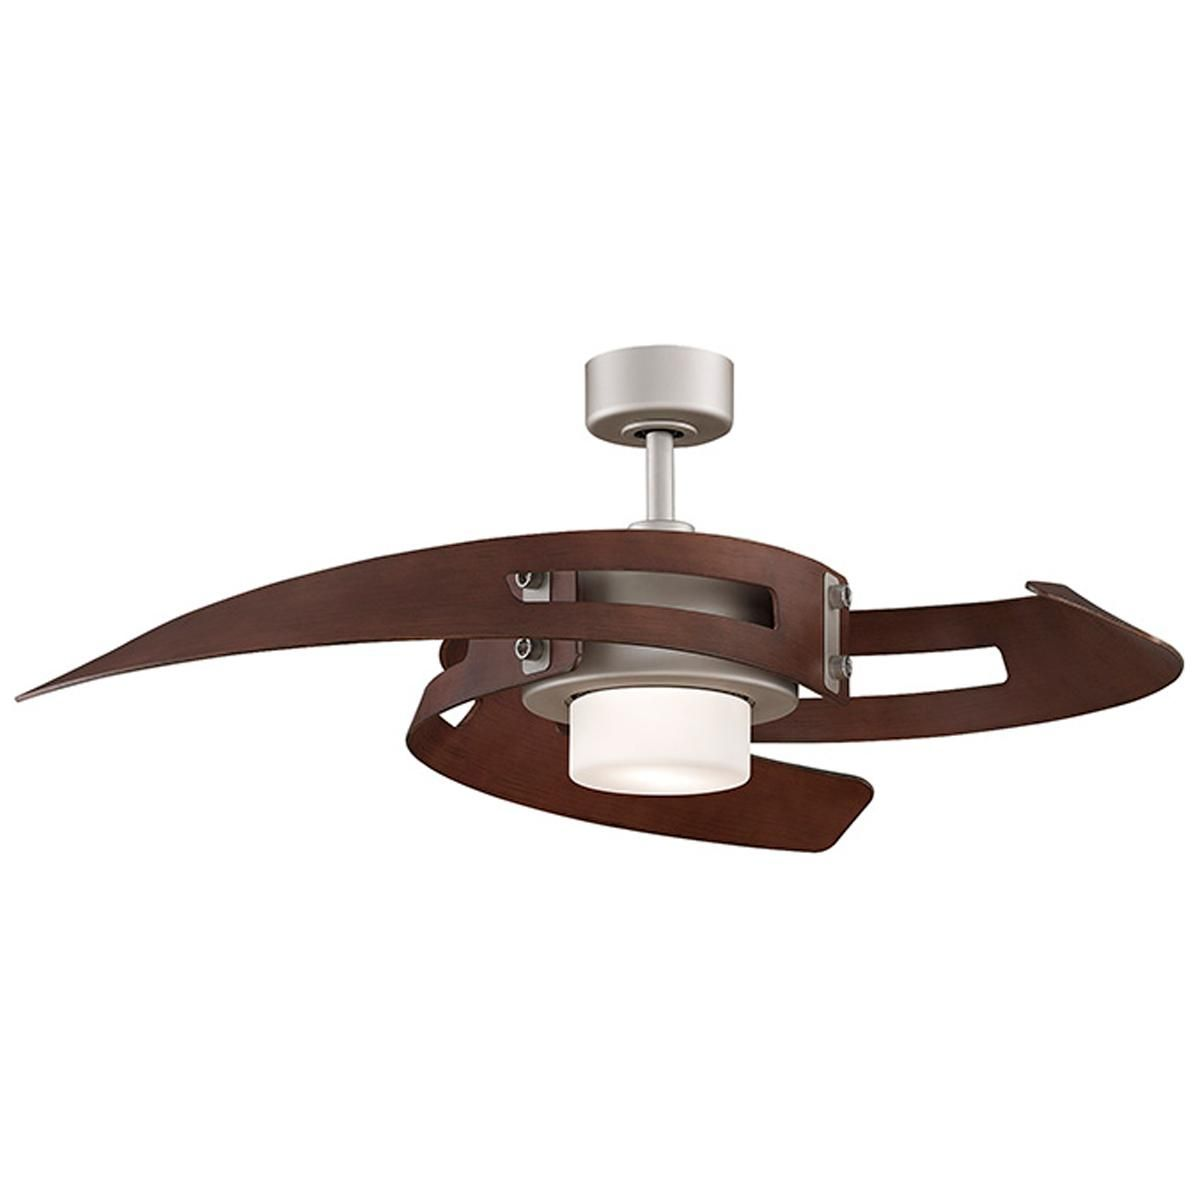 Ceiling Fan Stand Curved Blades Ceiling Fan 2 Finishes Lights And Pulls